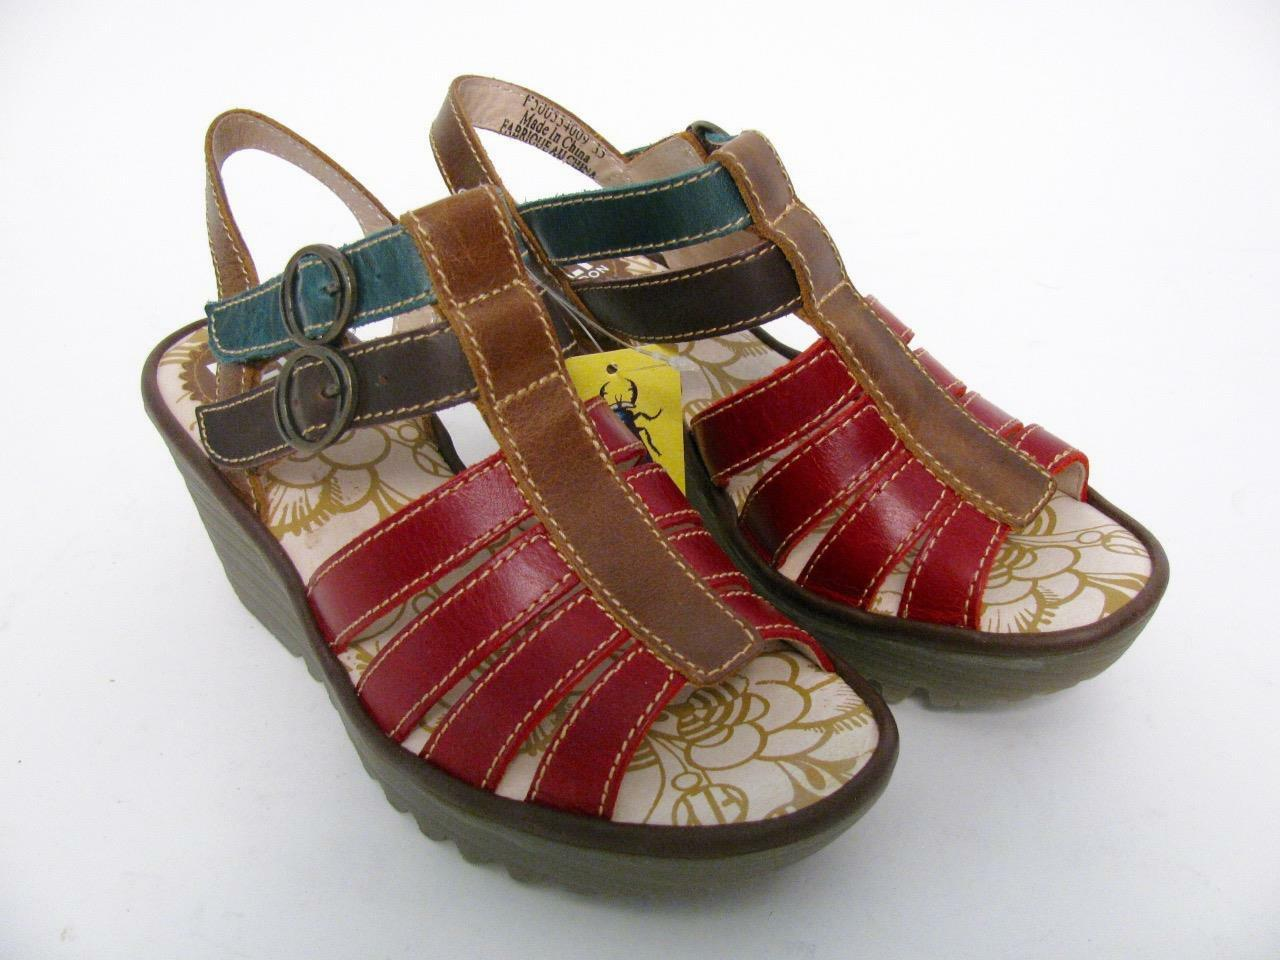 FLY LONDON LONDON LONDON START LEATE BUCKE ÖPP TOE WEDGE SANDALS skor 35   5  ingen skatt